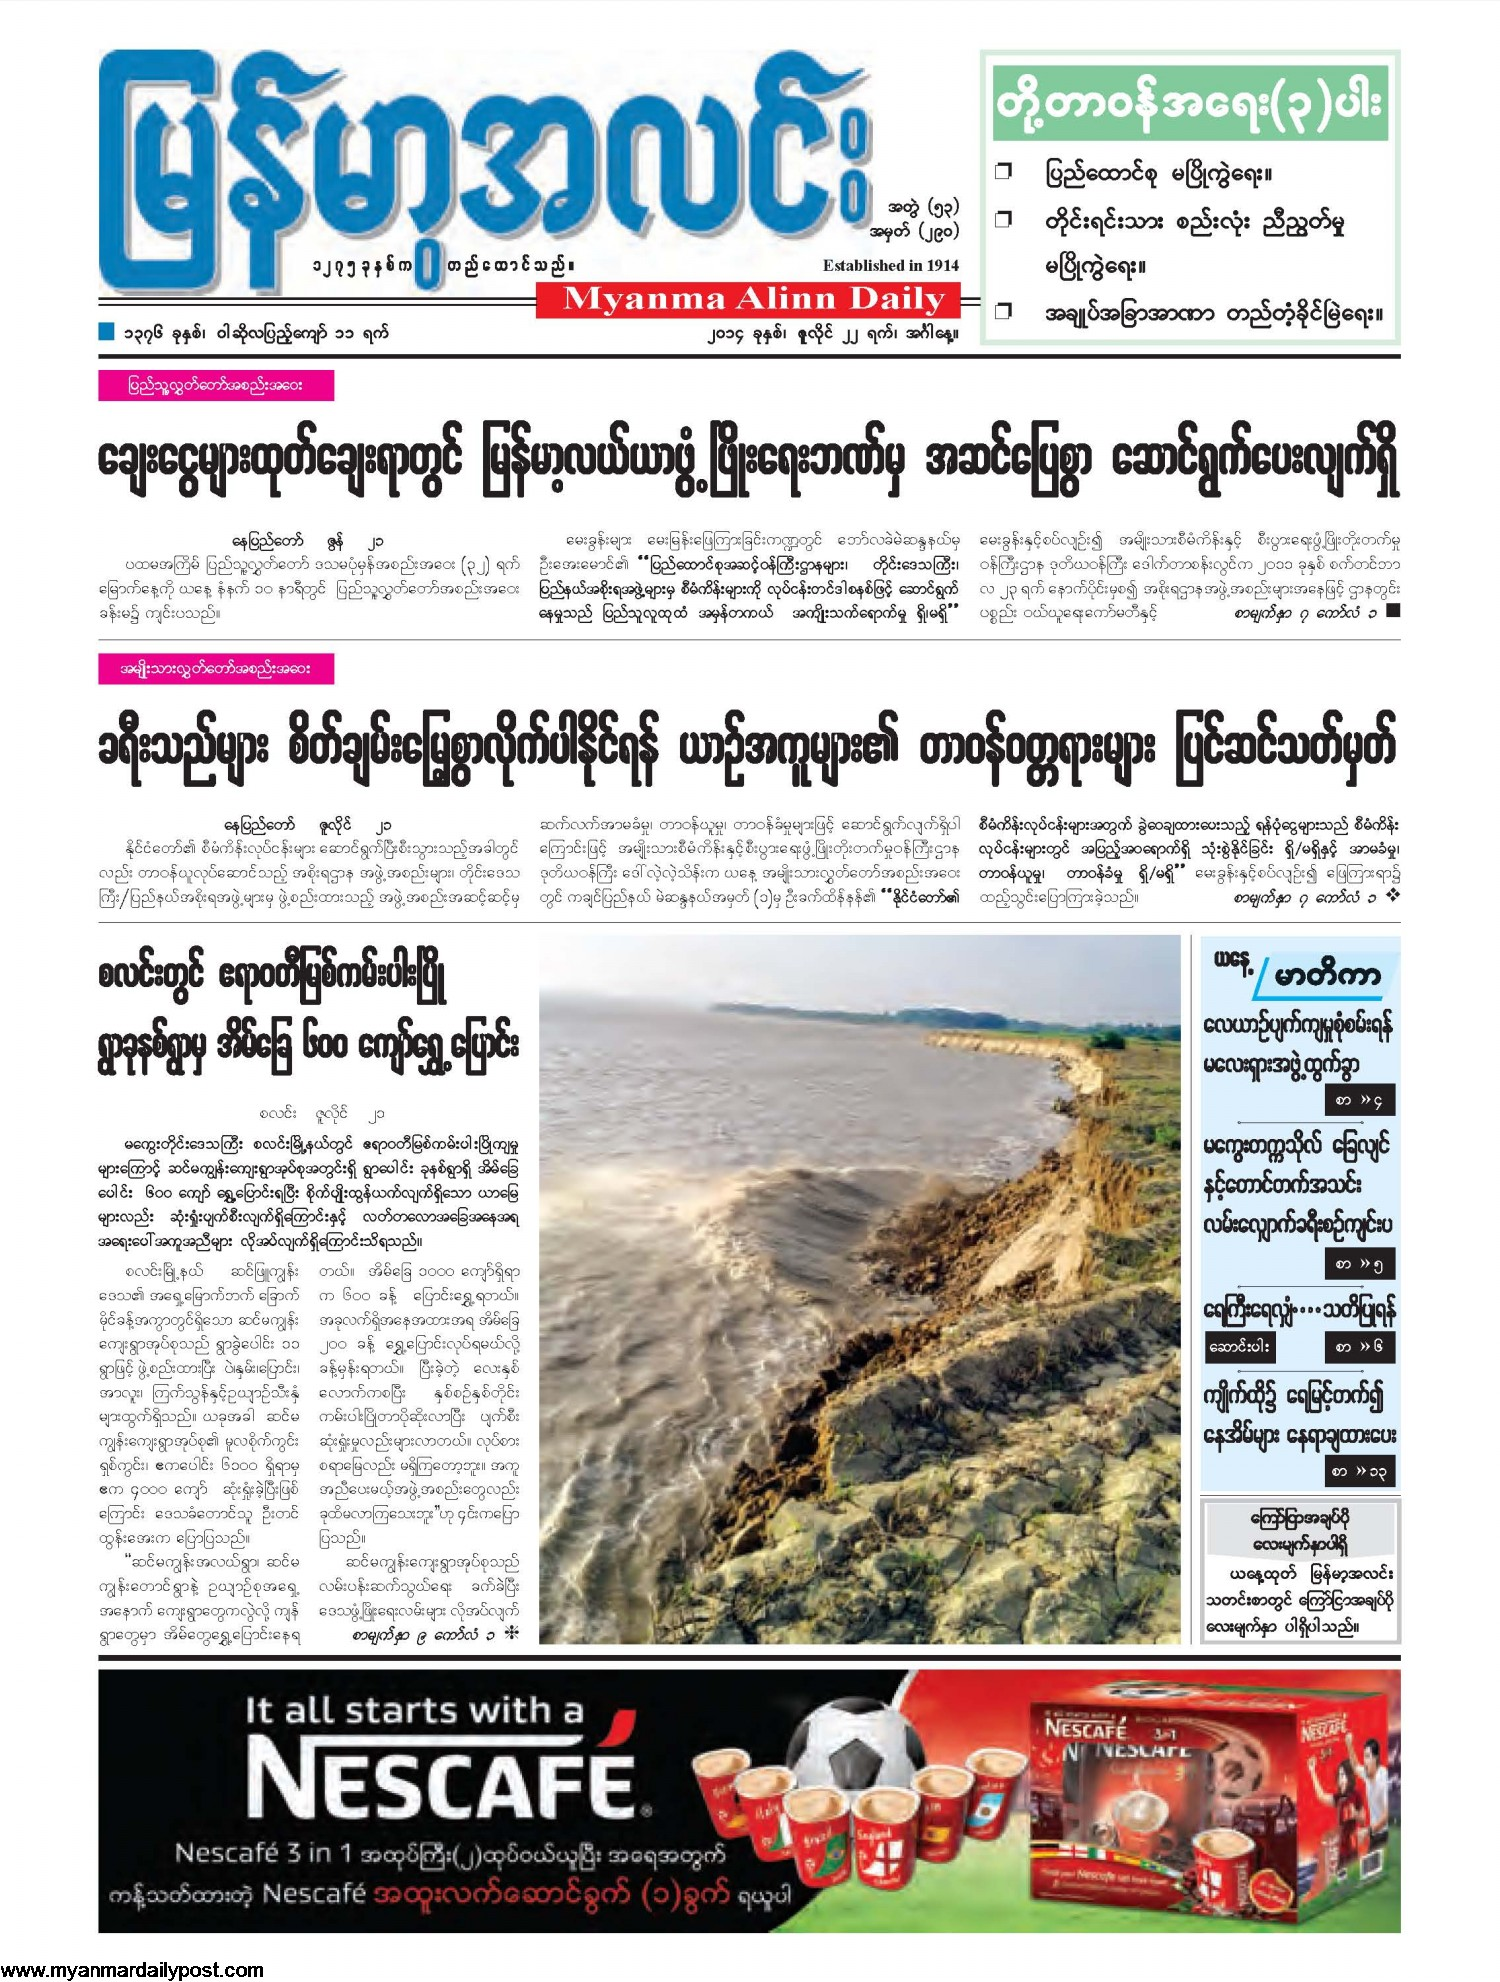 Myanma Alinn Daily Journal: Myanma Alinn Daily Journal